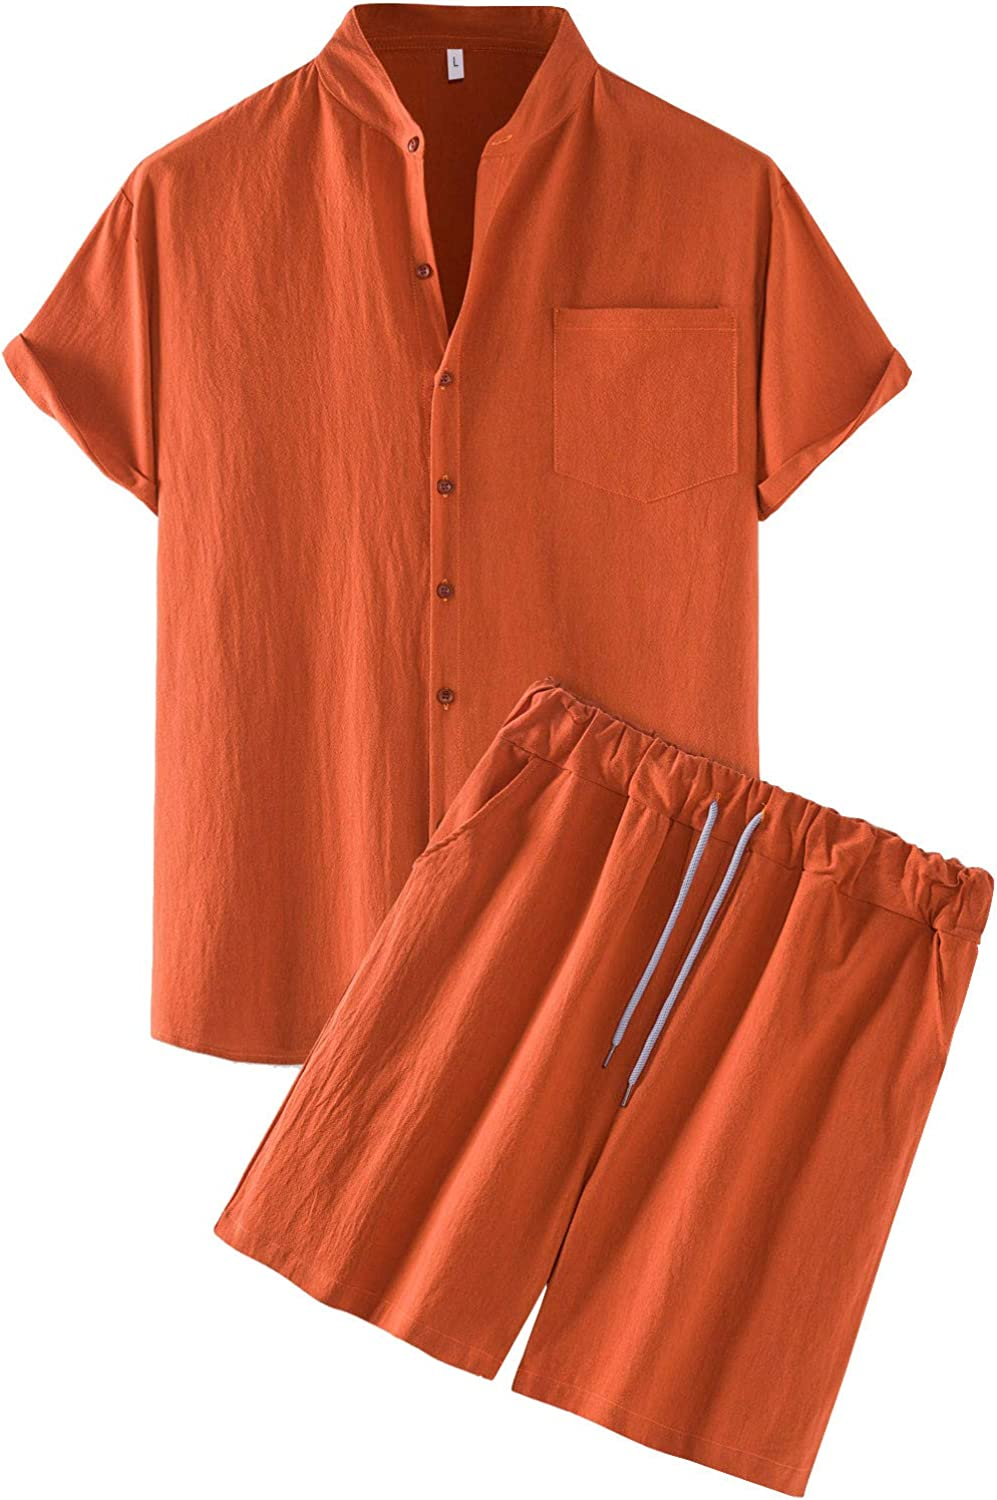 Men's 2 Piece Tracksuit Men's Summer NEW before High order selling Beach L 2-Piece Cotton